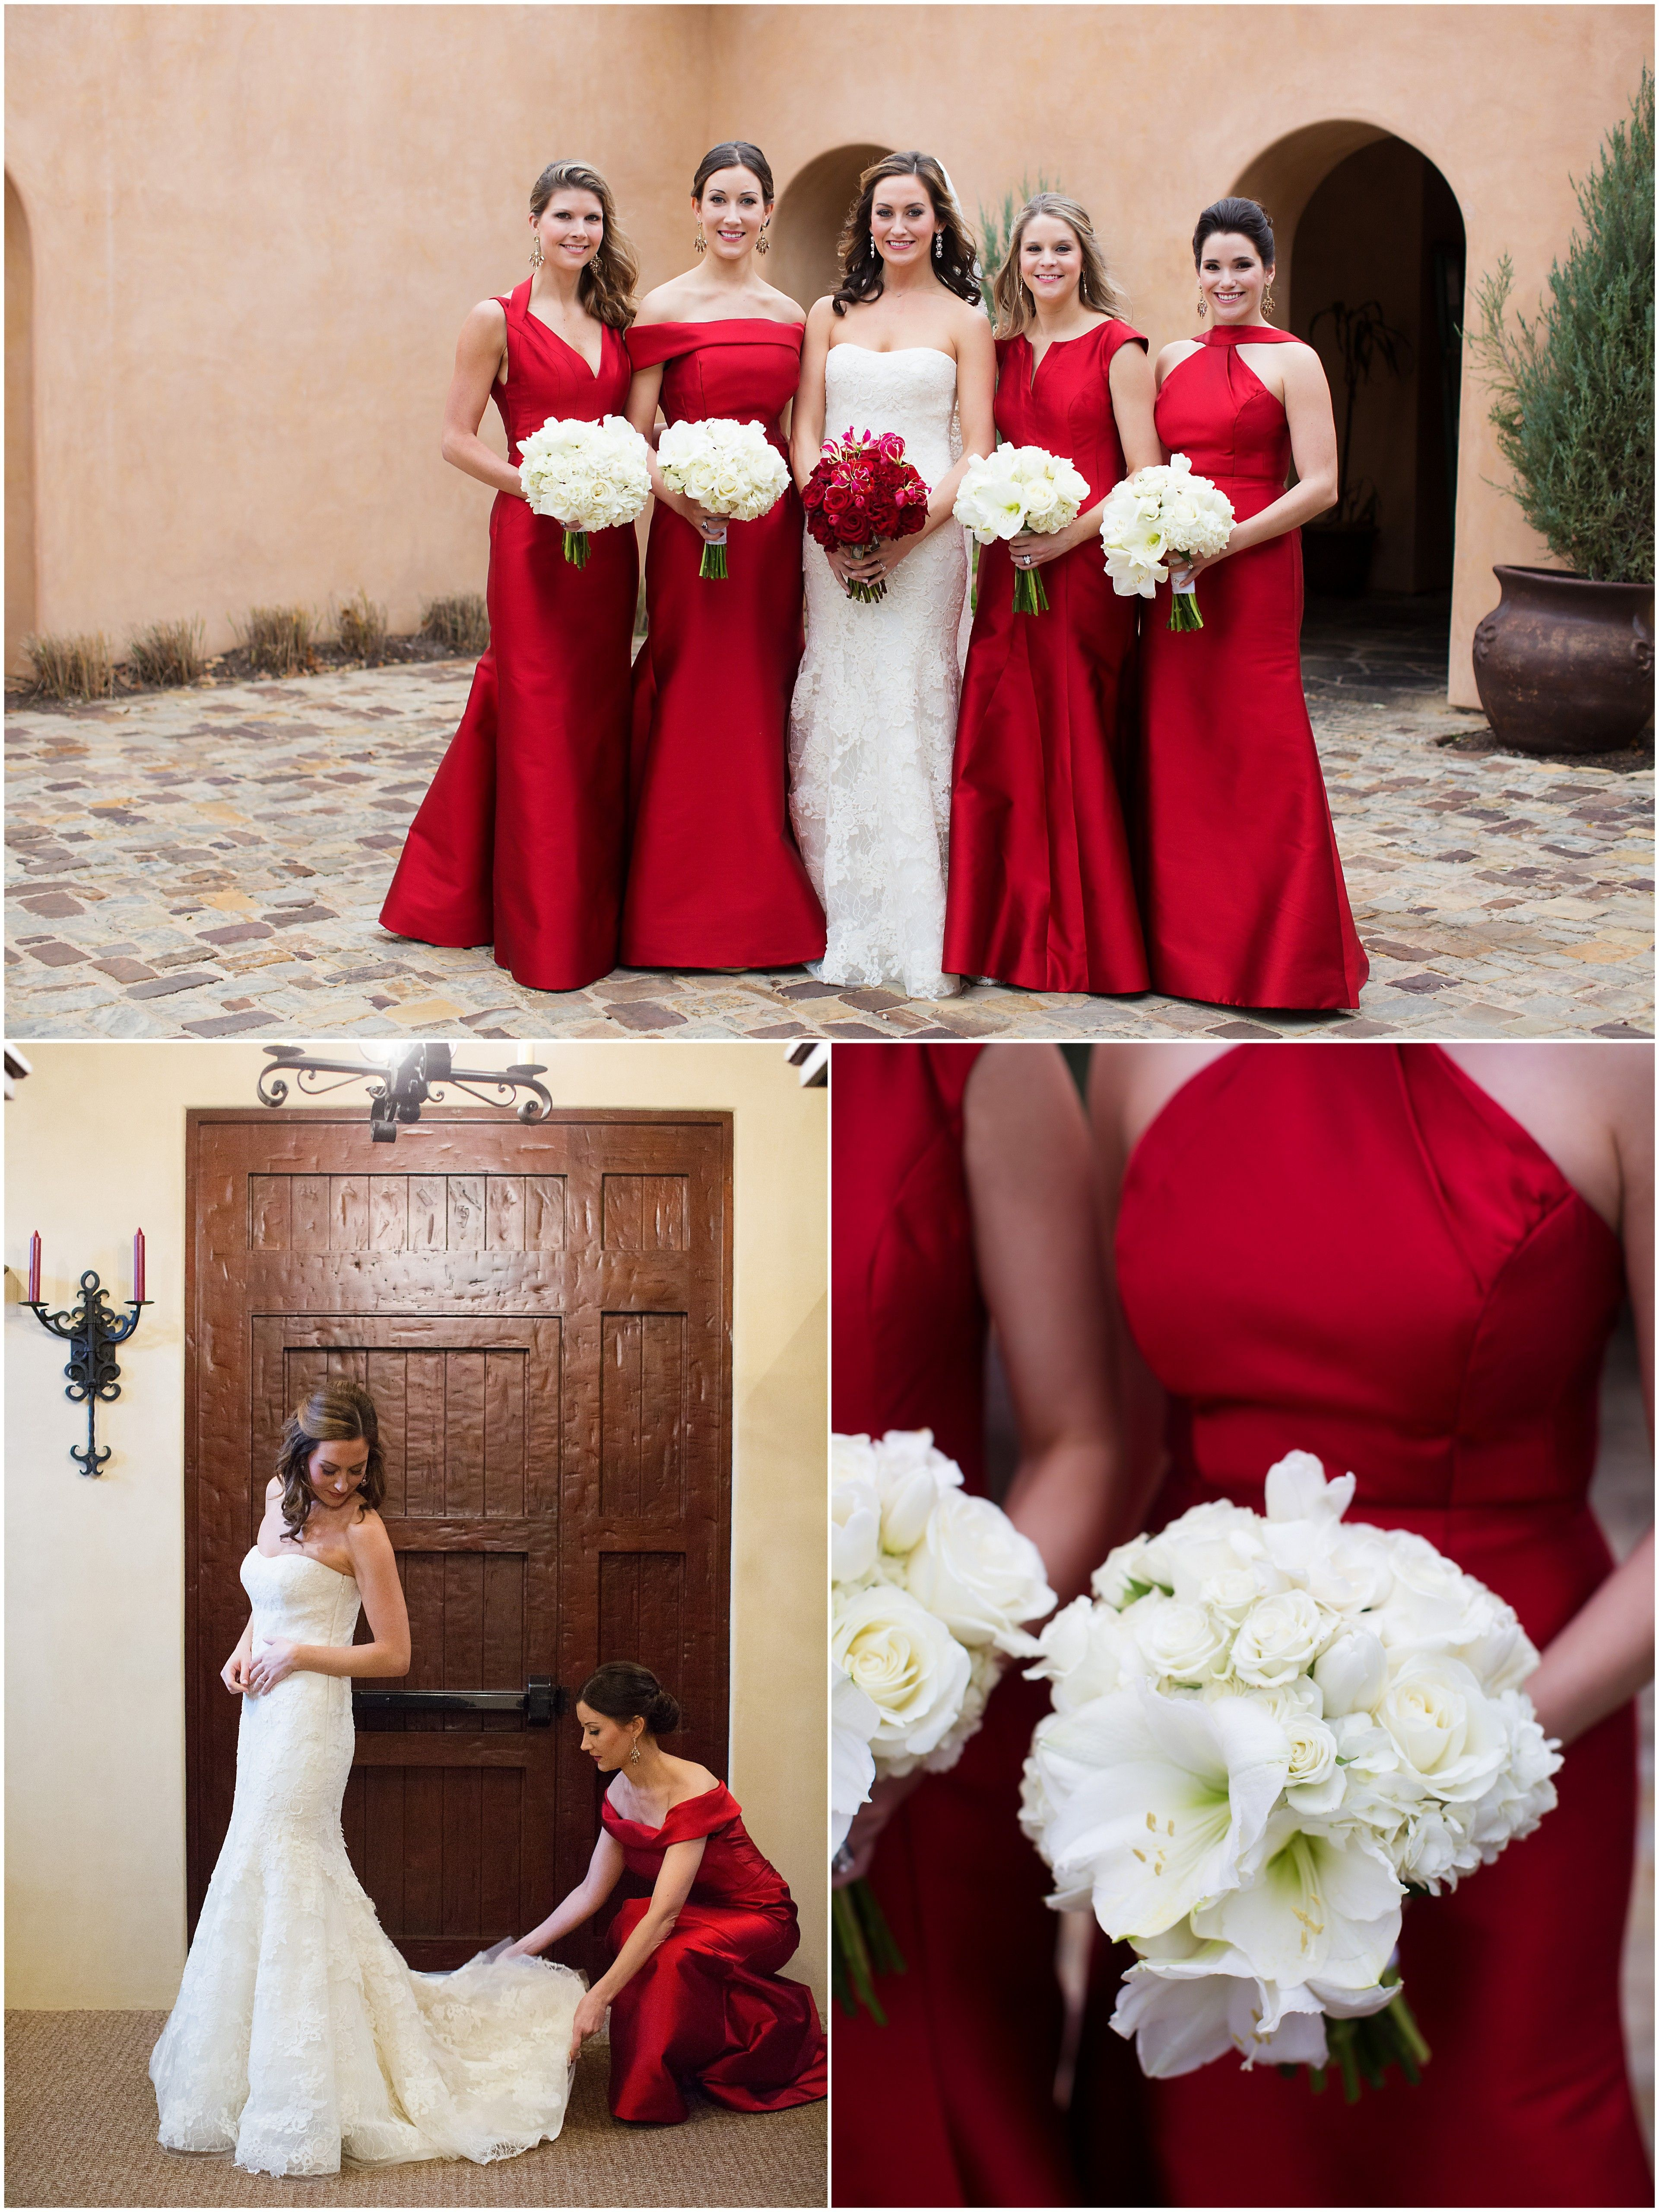 Red floor length gowns for the bridesmaids paired with cream red floor length gowns for the bridesmaids paired with cream blooms perfect for a christmas wedding ombrellifo Images